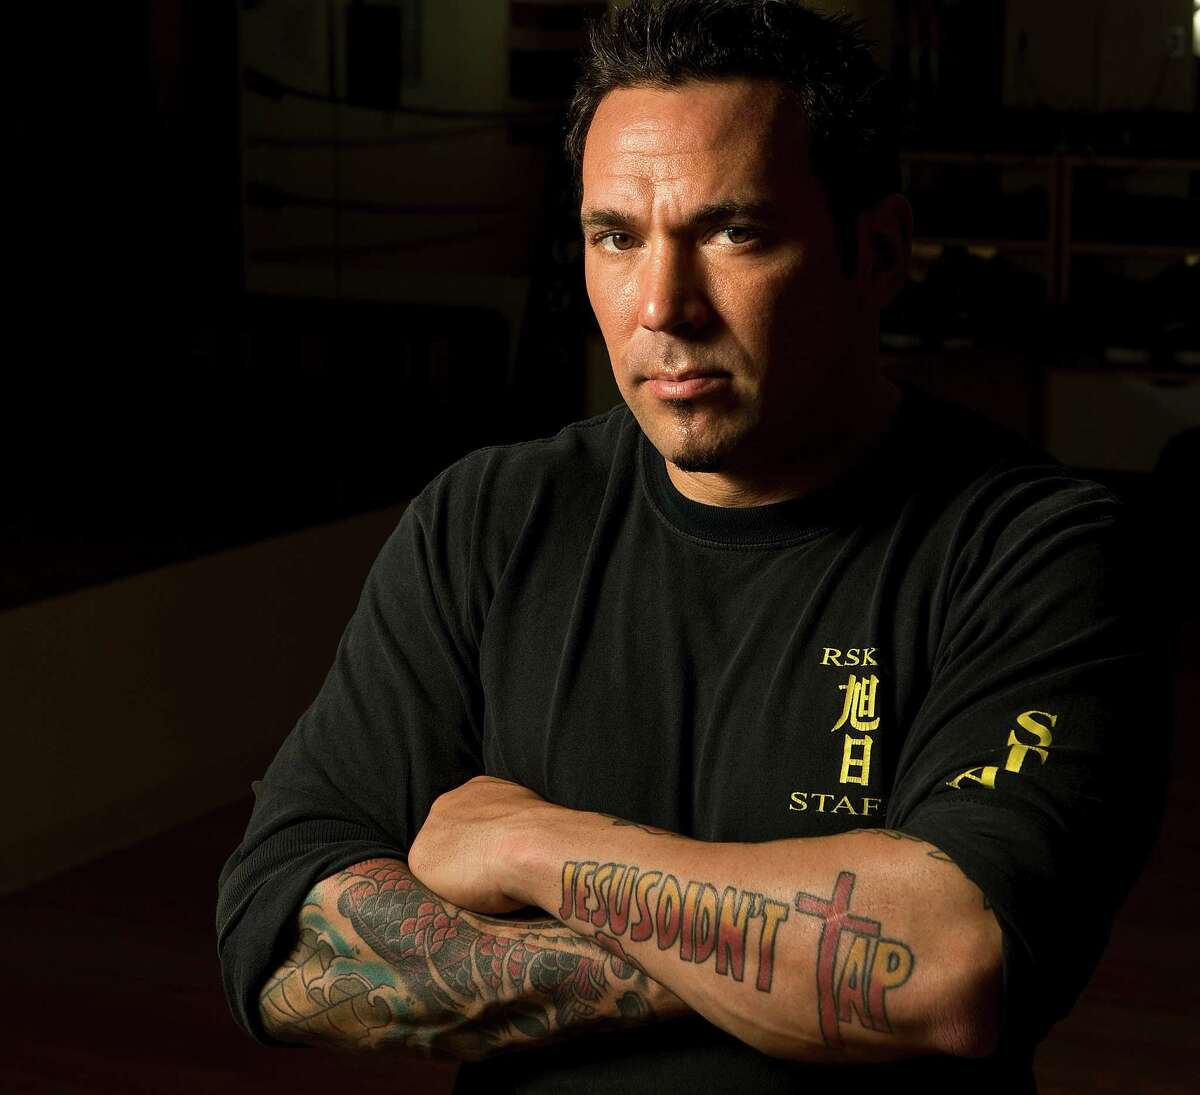 Jason David Frank, who rose to fame as the